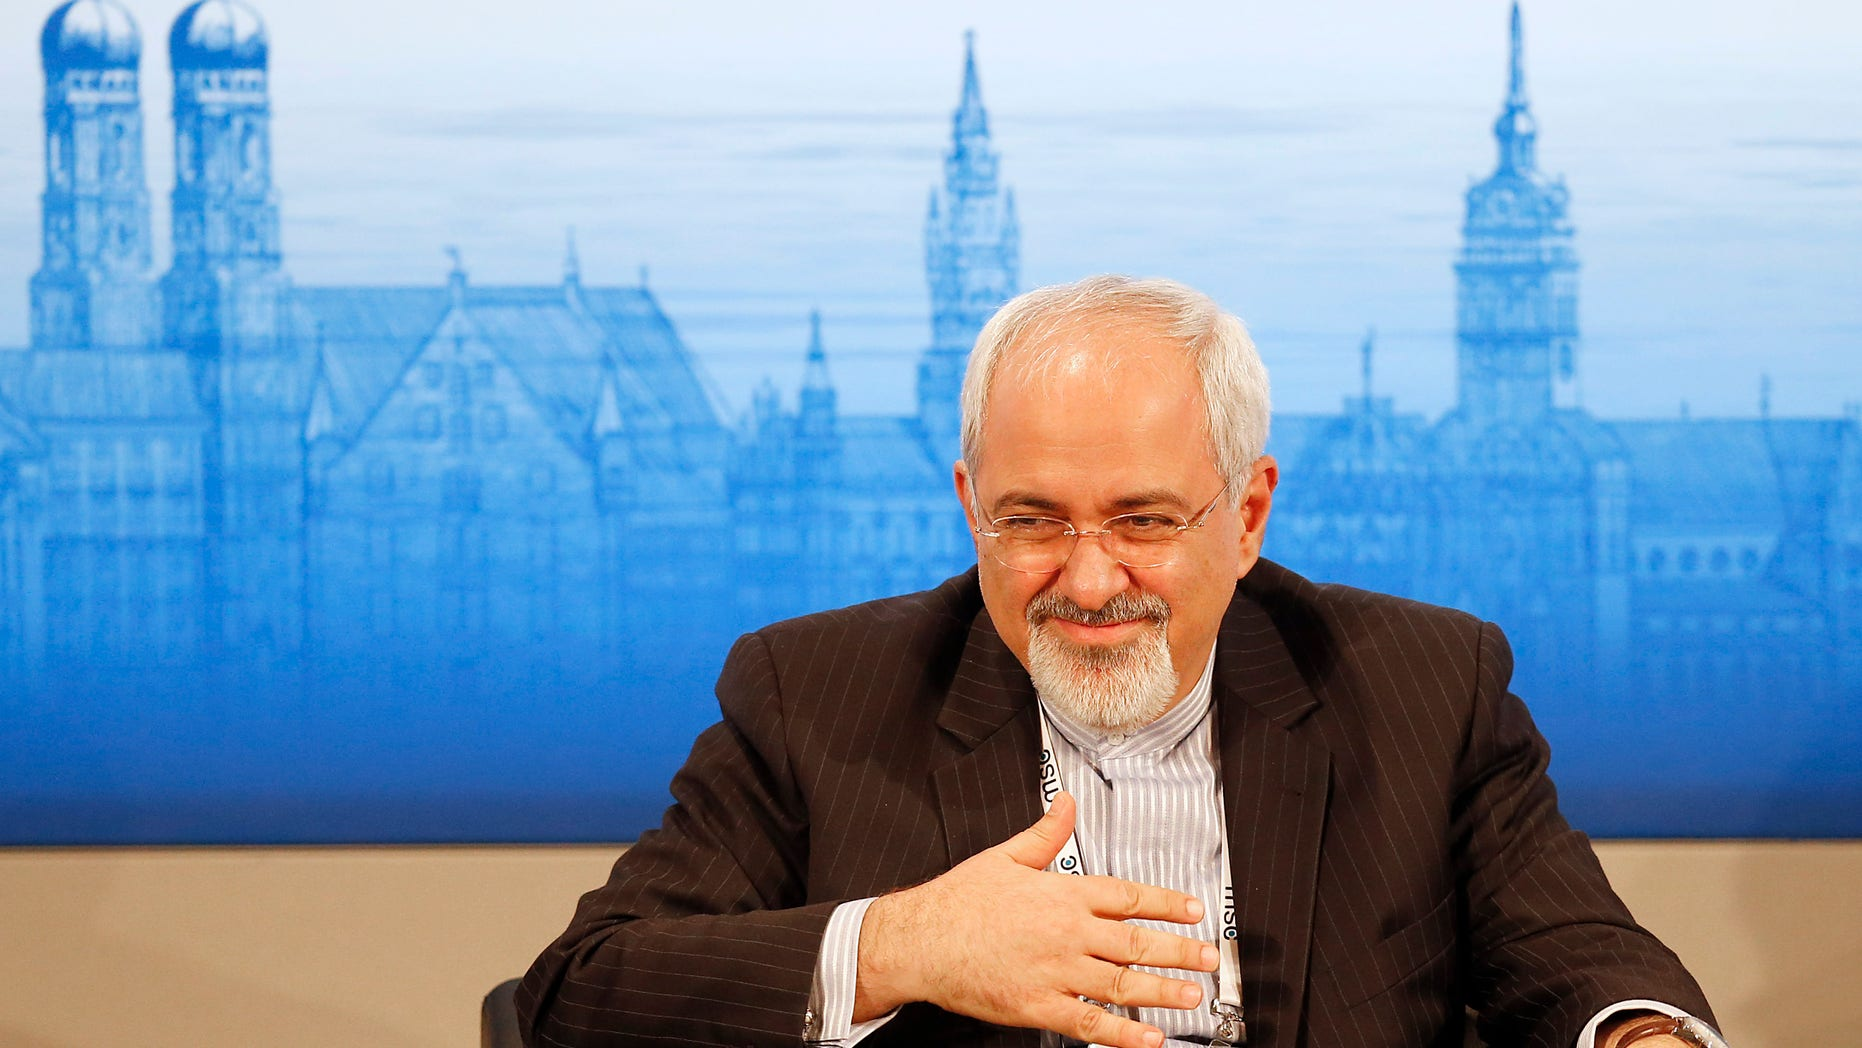 Feb. 2, 2014 - Iran's Foreign Minister Mohammad Javad Zarif listens during  a panel discussion at  the 50th Security Conference on security policy in Munich, Germany.